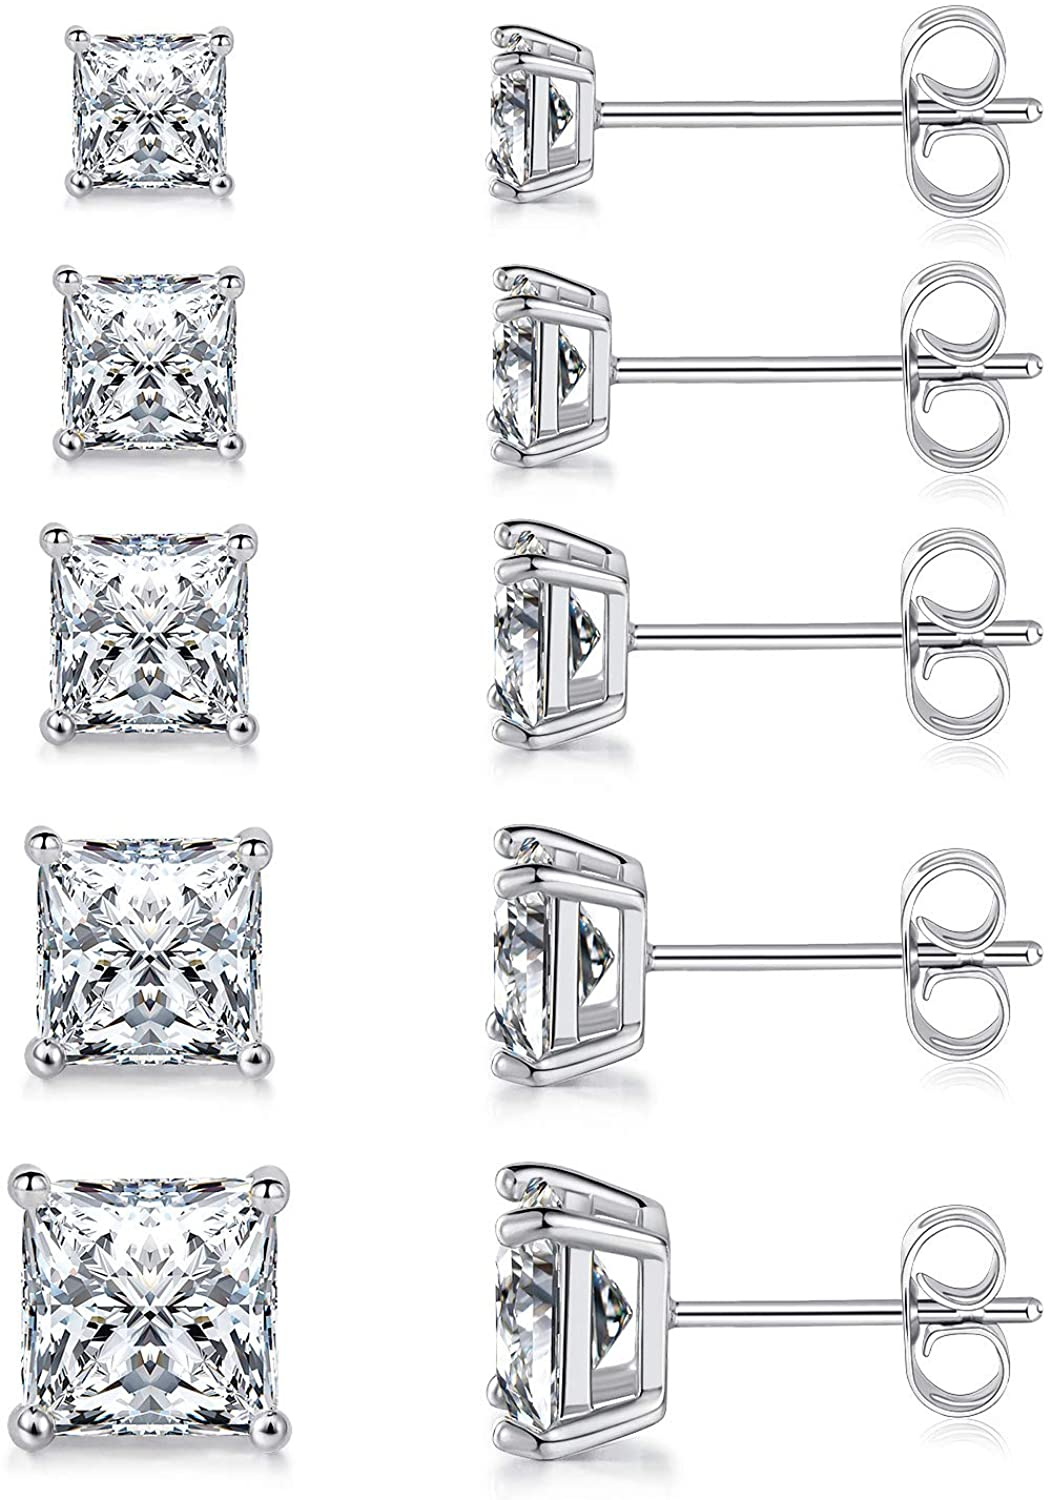 MDFUN 18K White Gold Plated Princess Cut Clear Cubic Zirconia Stud Earring Pack of 5 Pairs